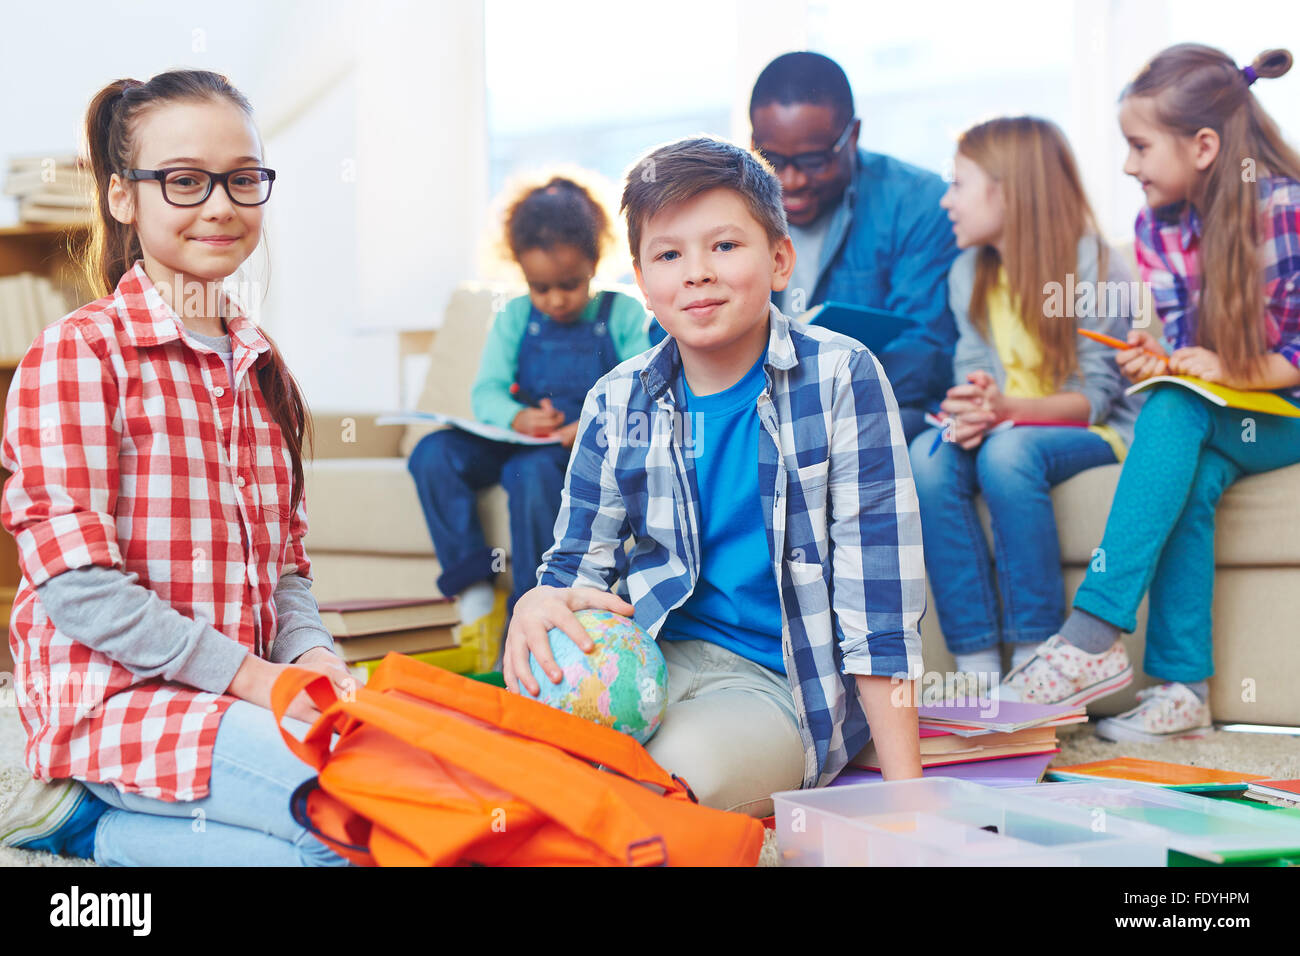 Little boy and girl looking at camera on background of teacher and other children - Stock Image